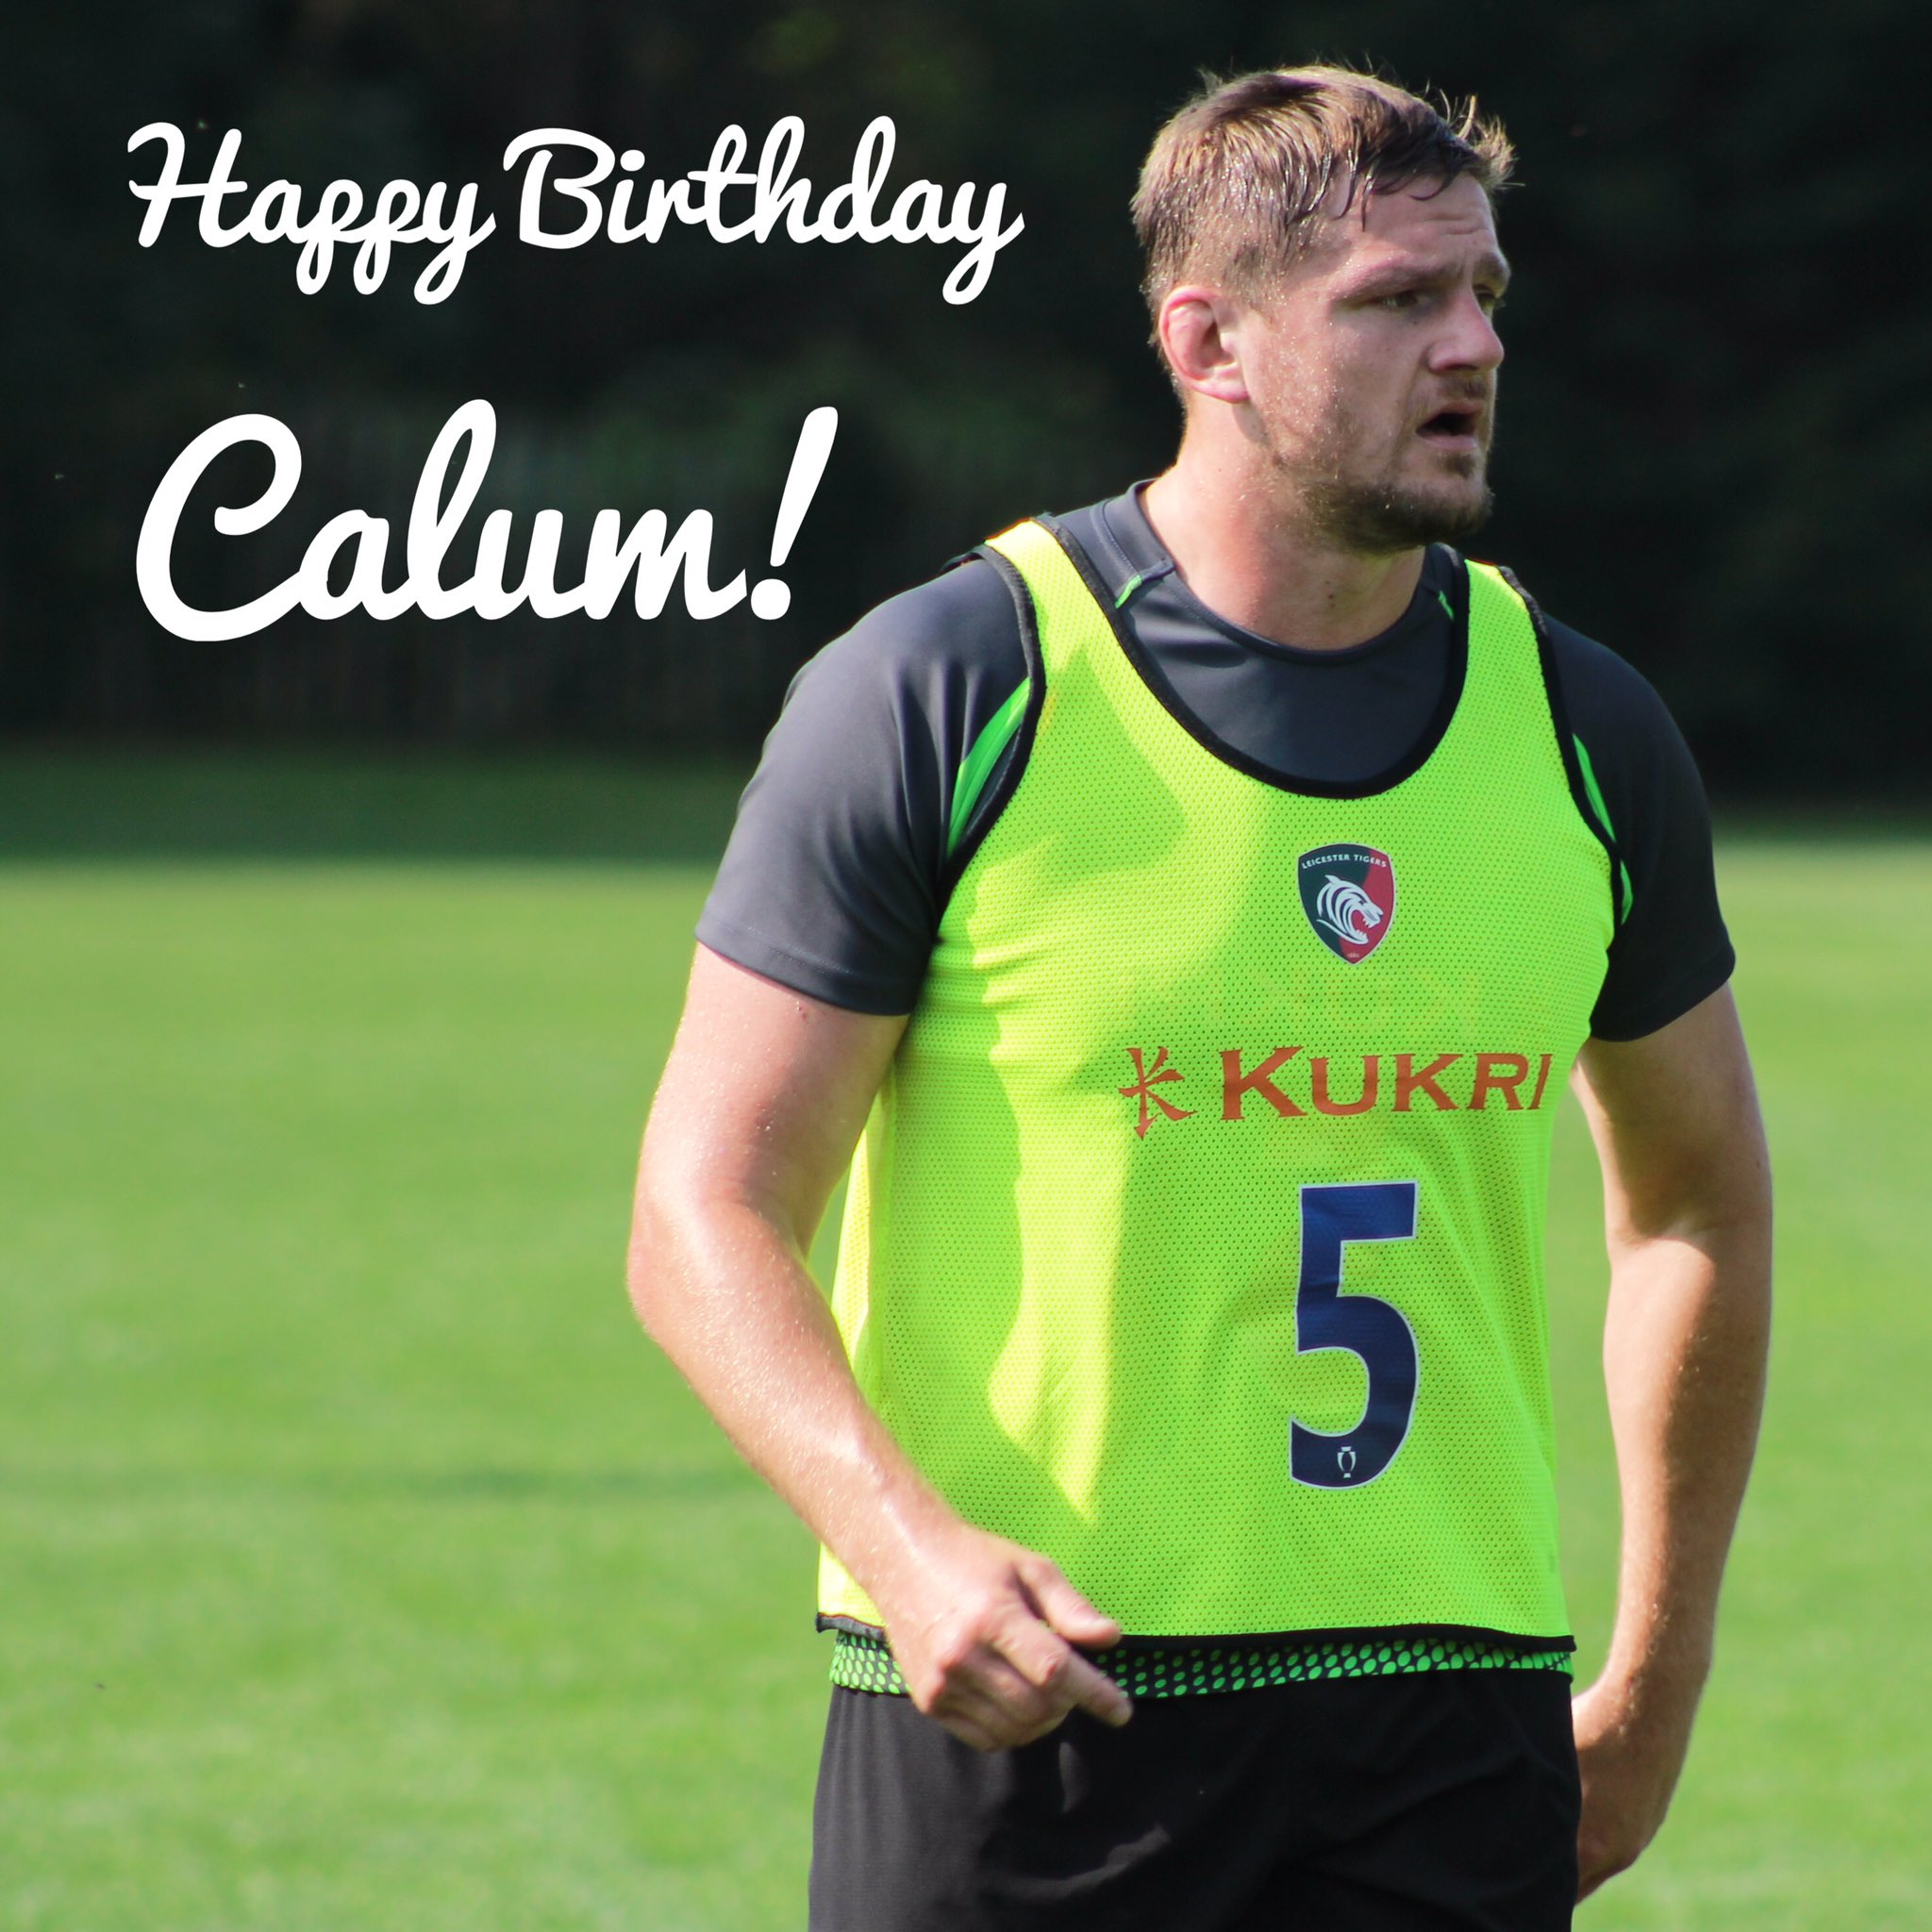 Yes, we are a day late.  However, largely due to fear for what he might do to us, we are still going to say ... Happy (belated) Birthday 🥳 to Calum Green! https://t.co/tgxDJTJD6Y